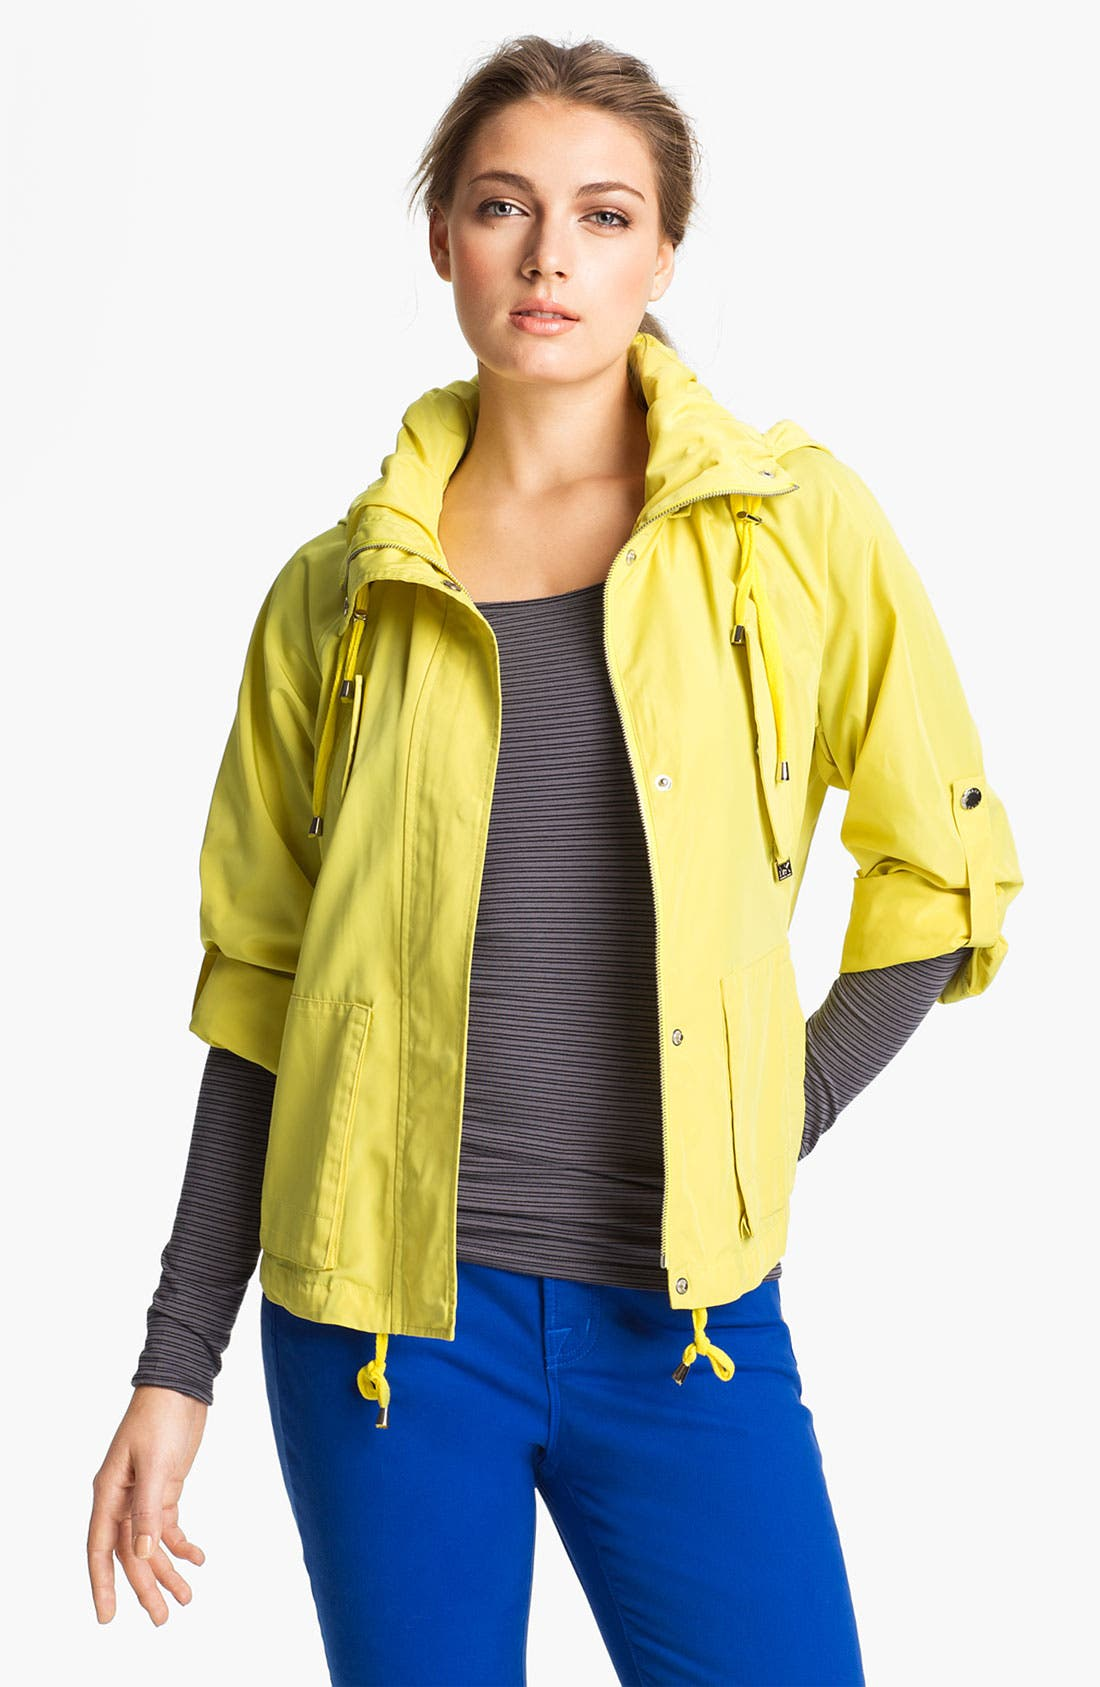 Alternate Image 1 Selected - MICHAEL Michael Kors Hooded Roll Sleeve Jacket (Regular & Petite)